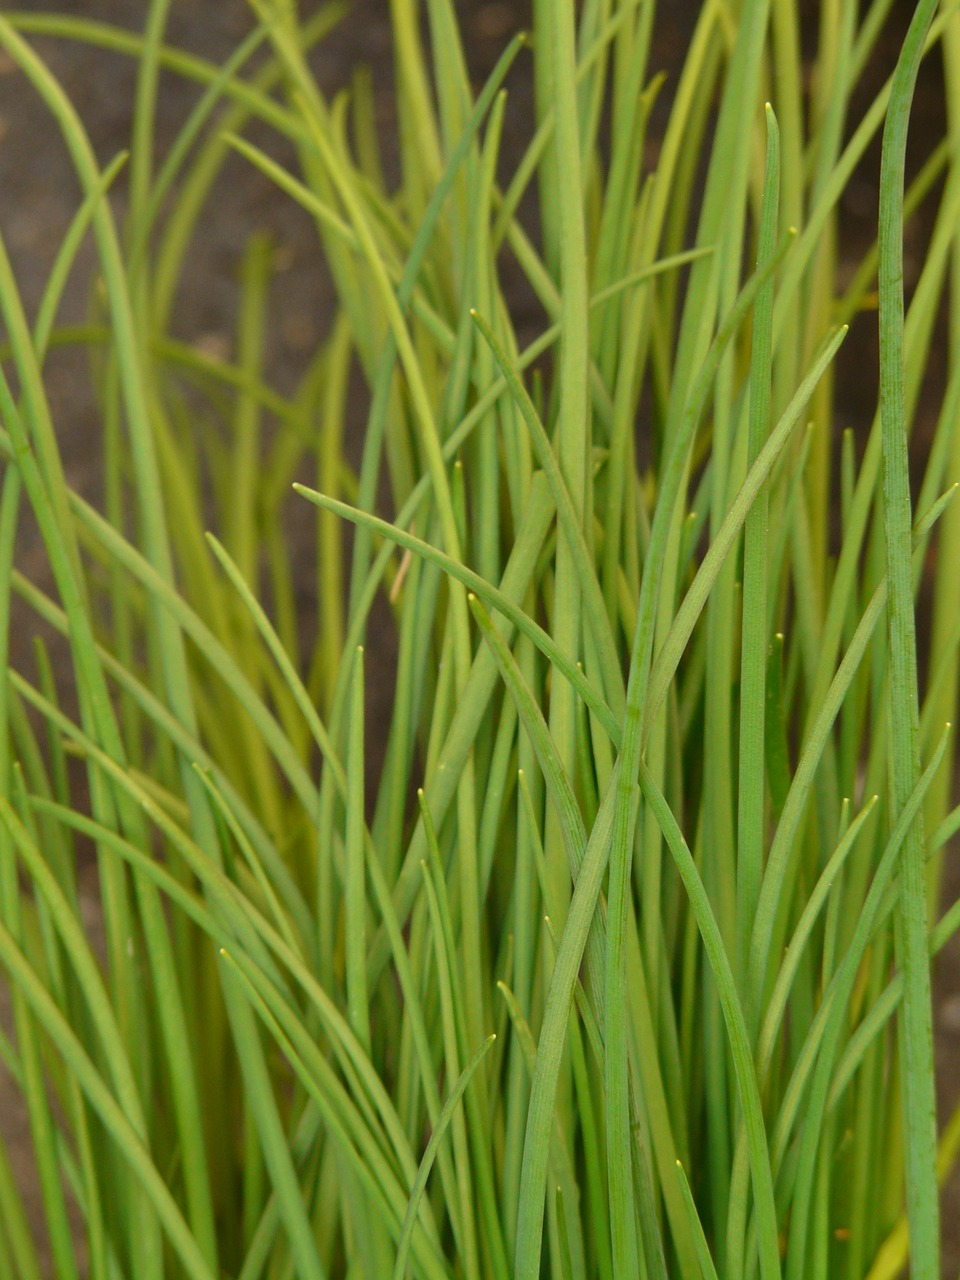 chives leek kitchen spice free photo